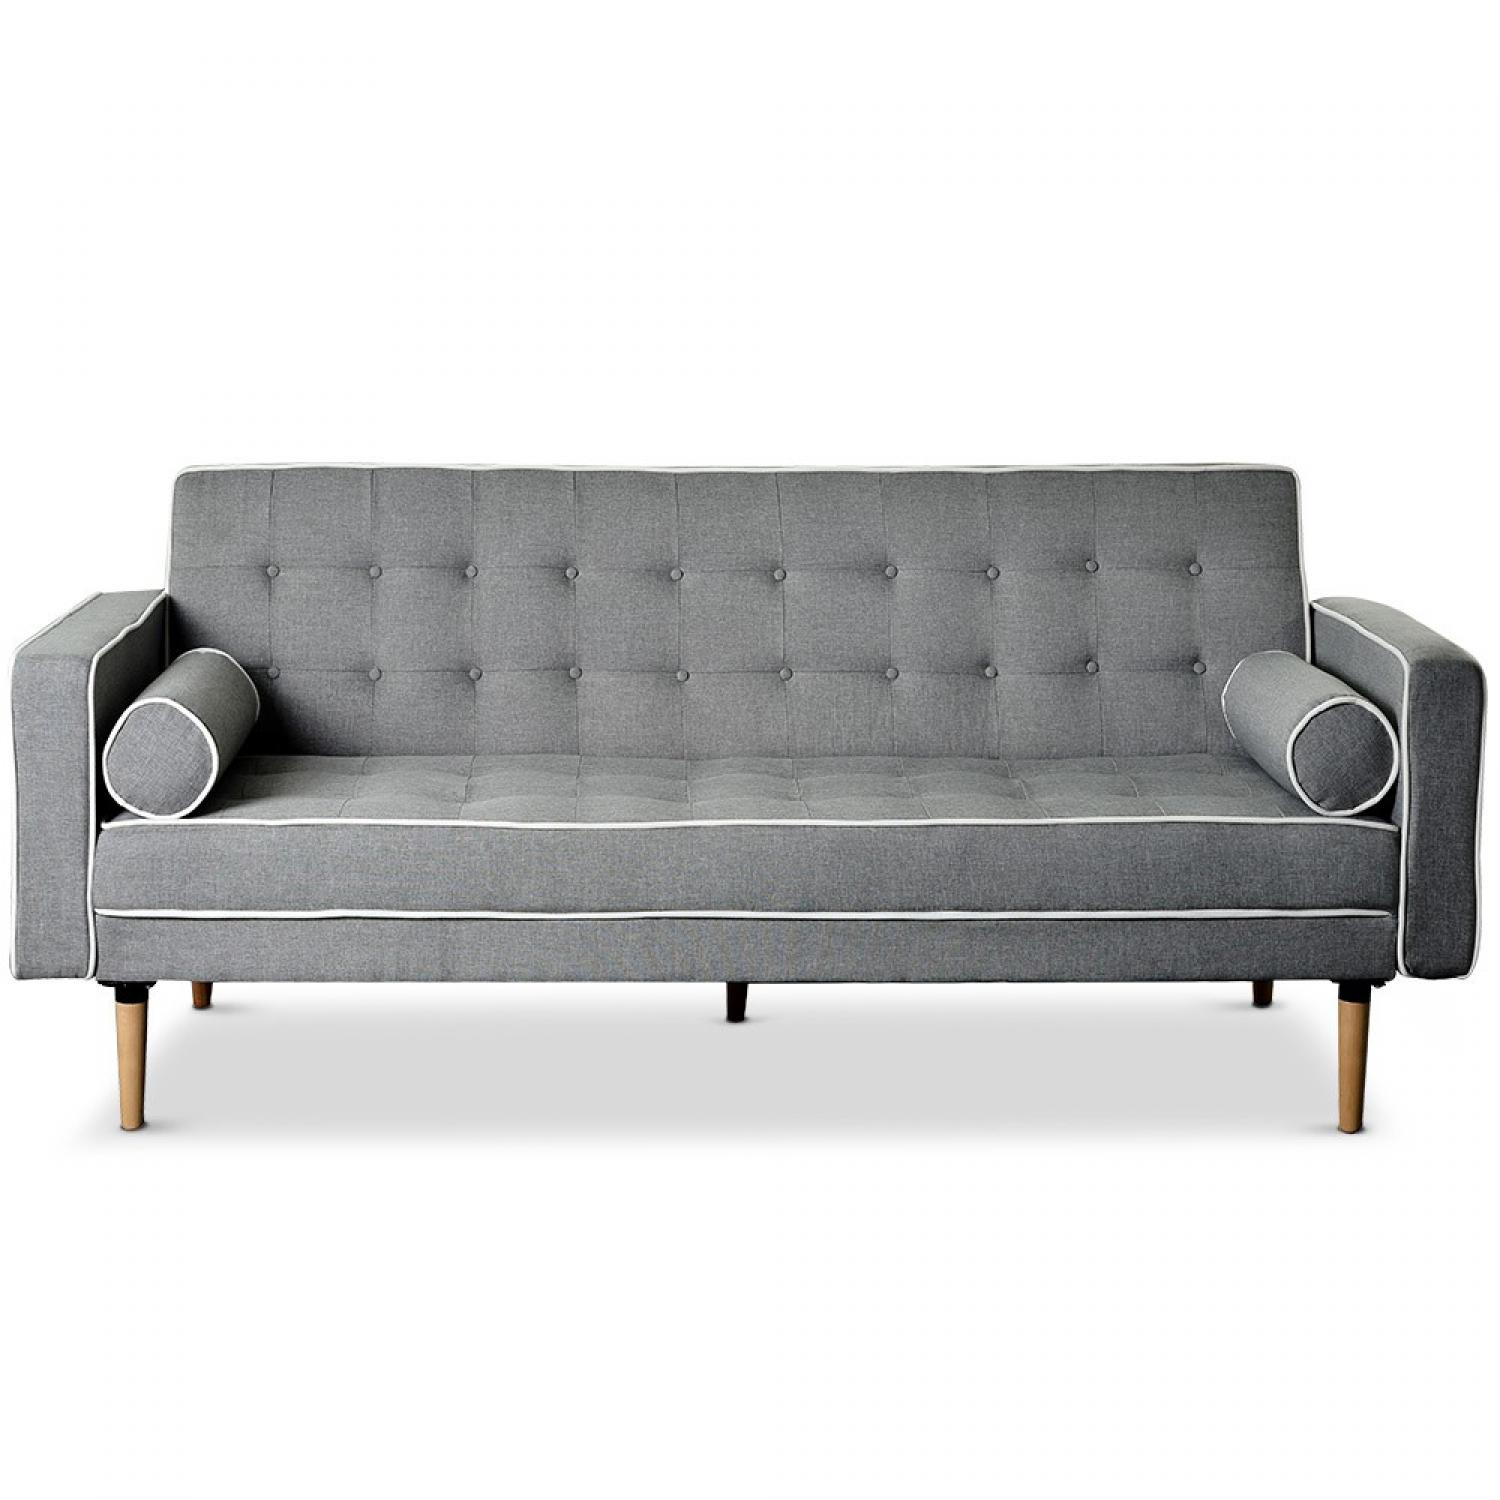 Photos canap chesterfield tissu gris - Canape chesterfield tissu gris ...